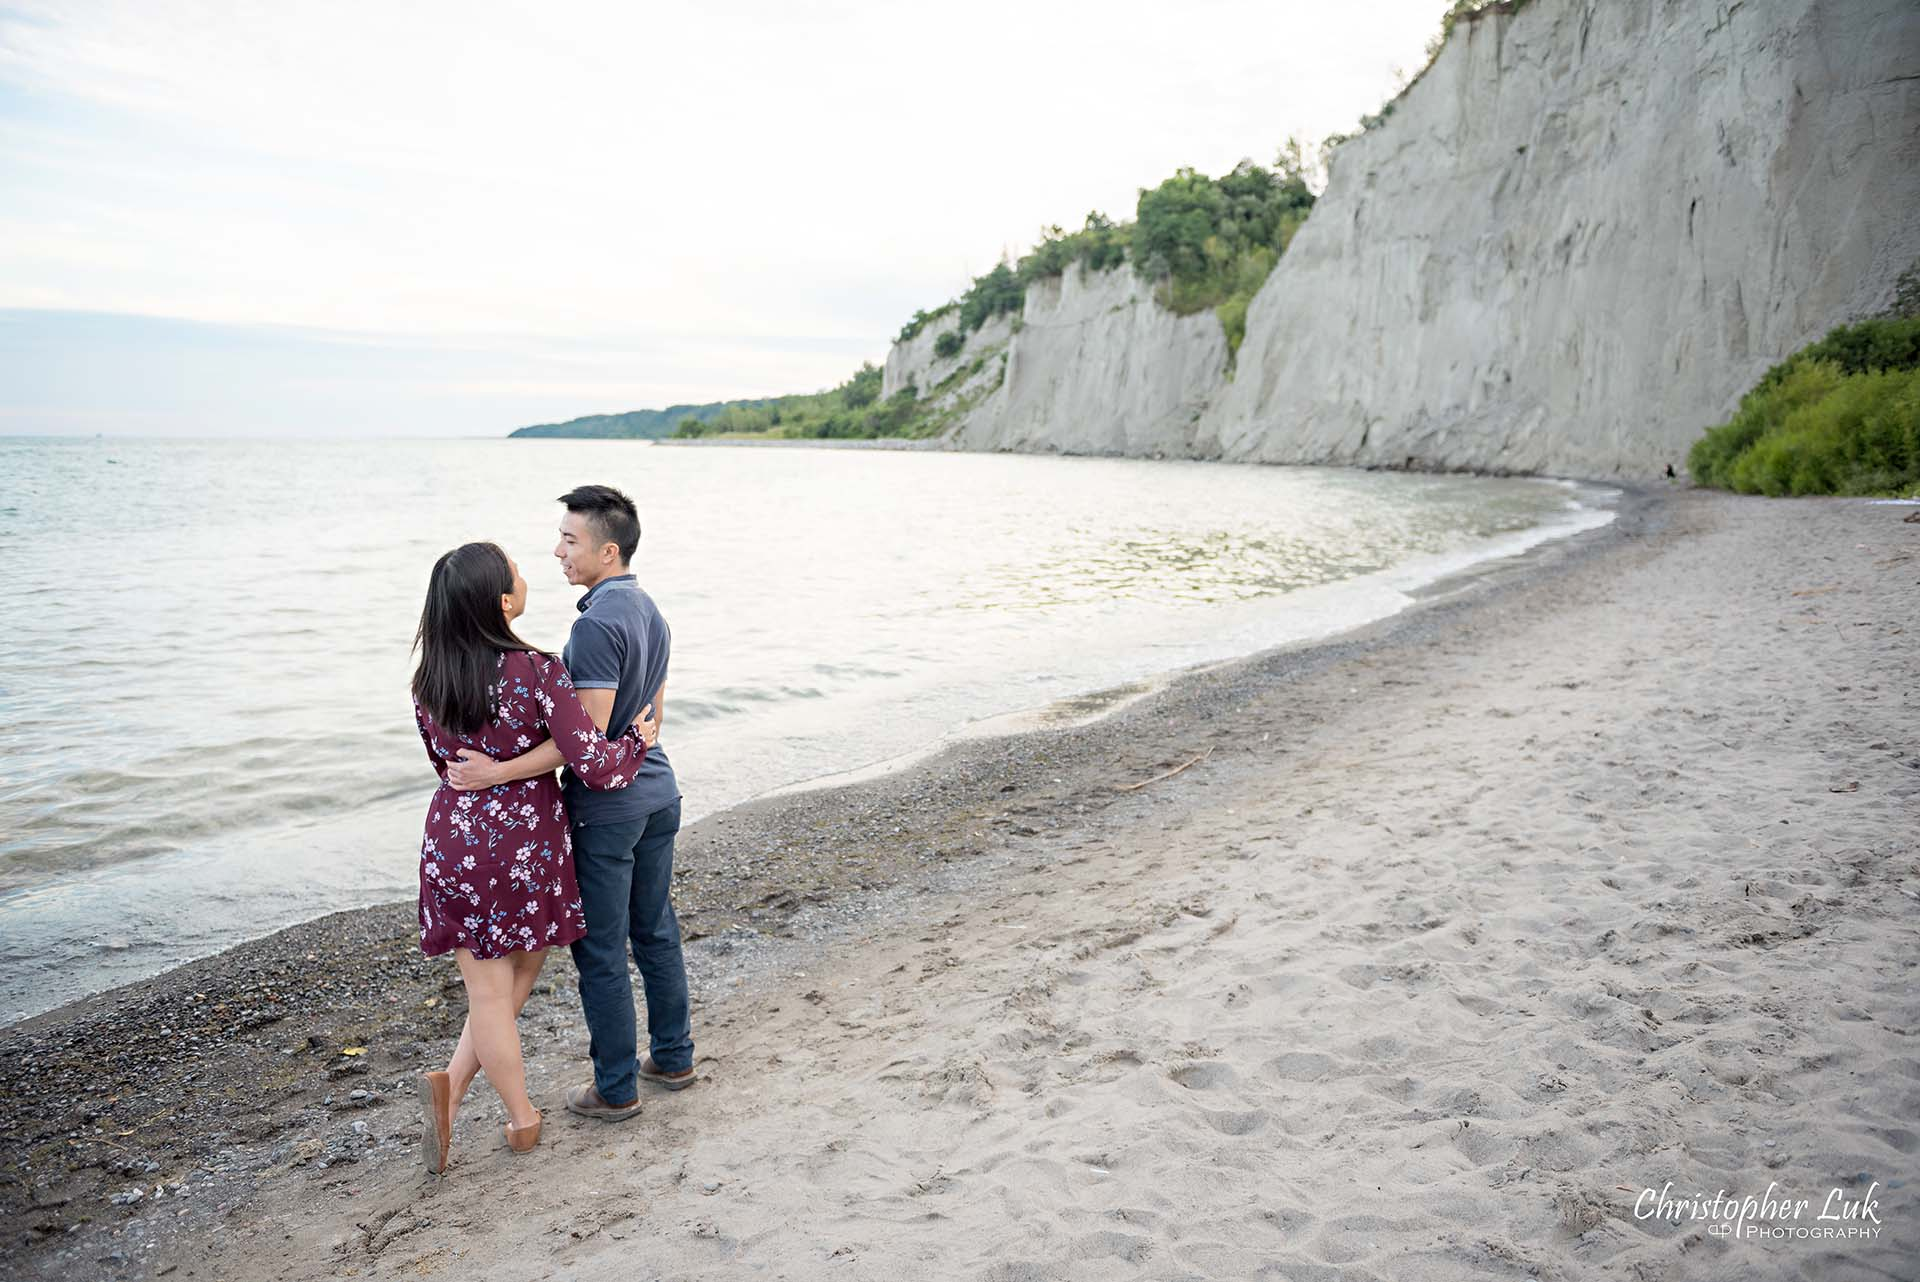 Christopher Luk Toronto Photographer Scarborough Bluffs Beach Park Sunset Surprise Wedding Marriage Engagement Proposal Candid Natural Photojournalistic Bride Groom Waterfront Water Lake Ontario Background Beachfront Sand Hug Angle